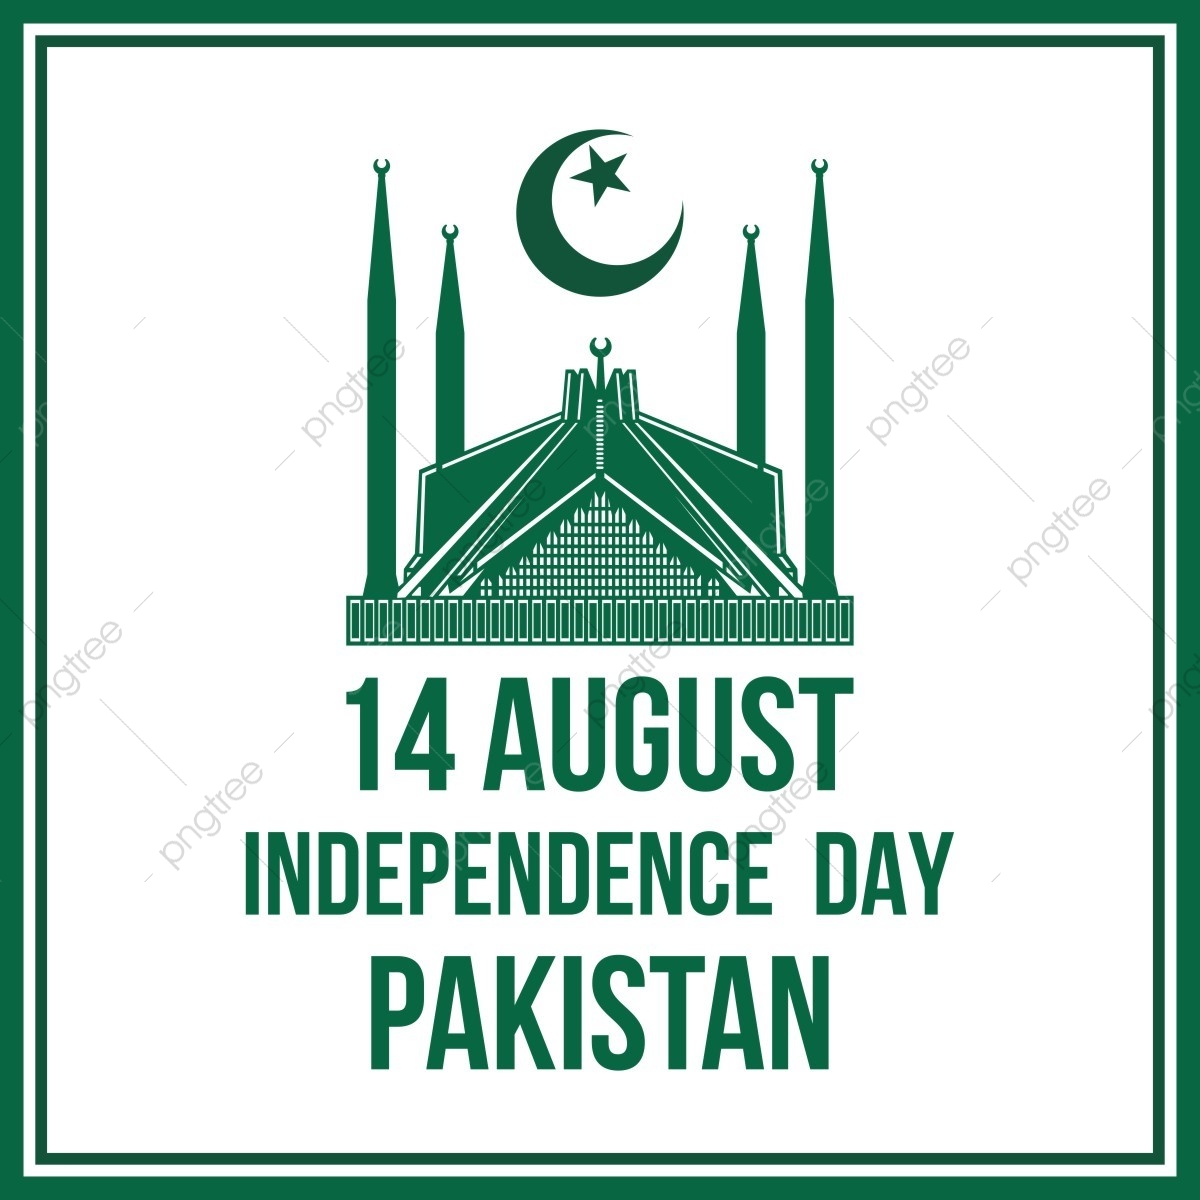 Pakistan Happy Independence Day 14 August 14 August Moon Flag Of Pakistan Png And Vector With Transparent Background For Free Download